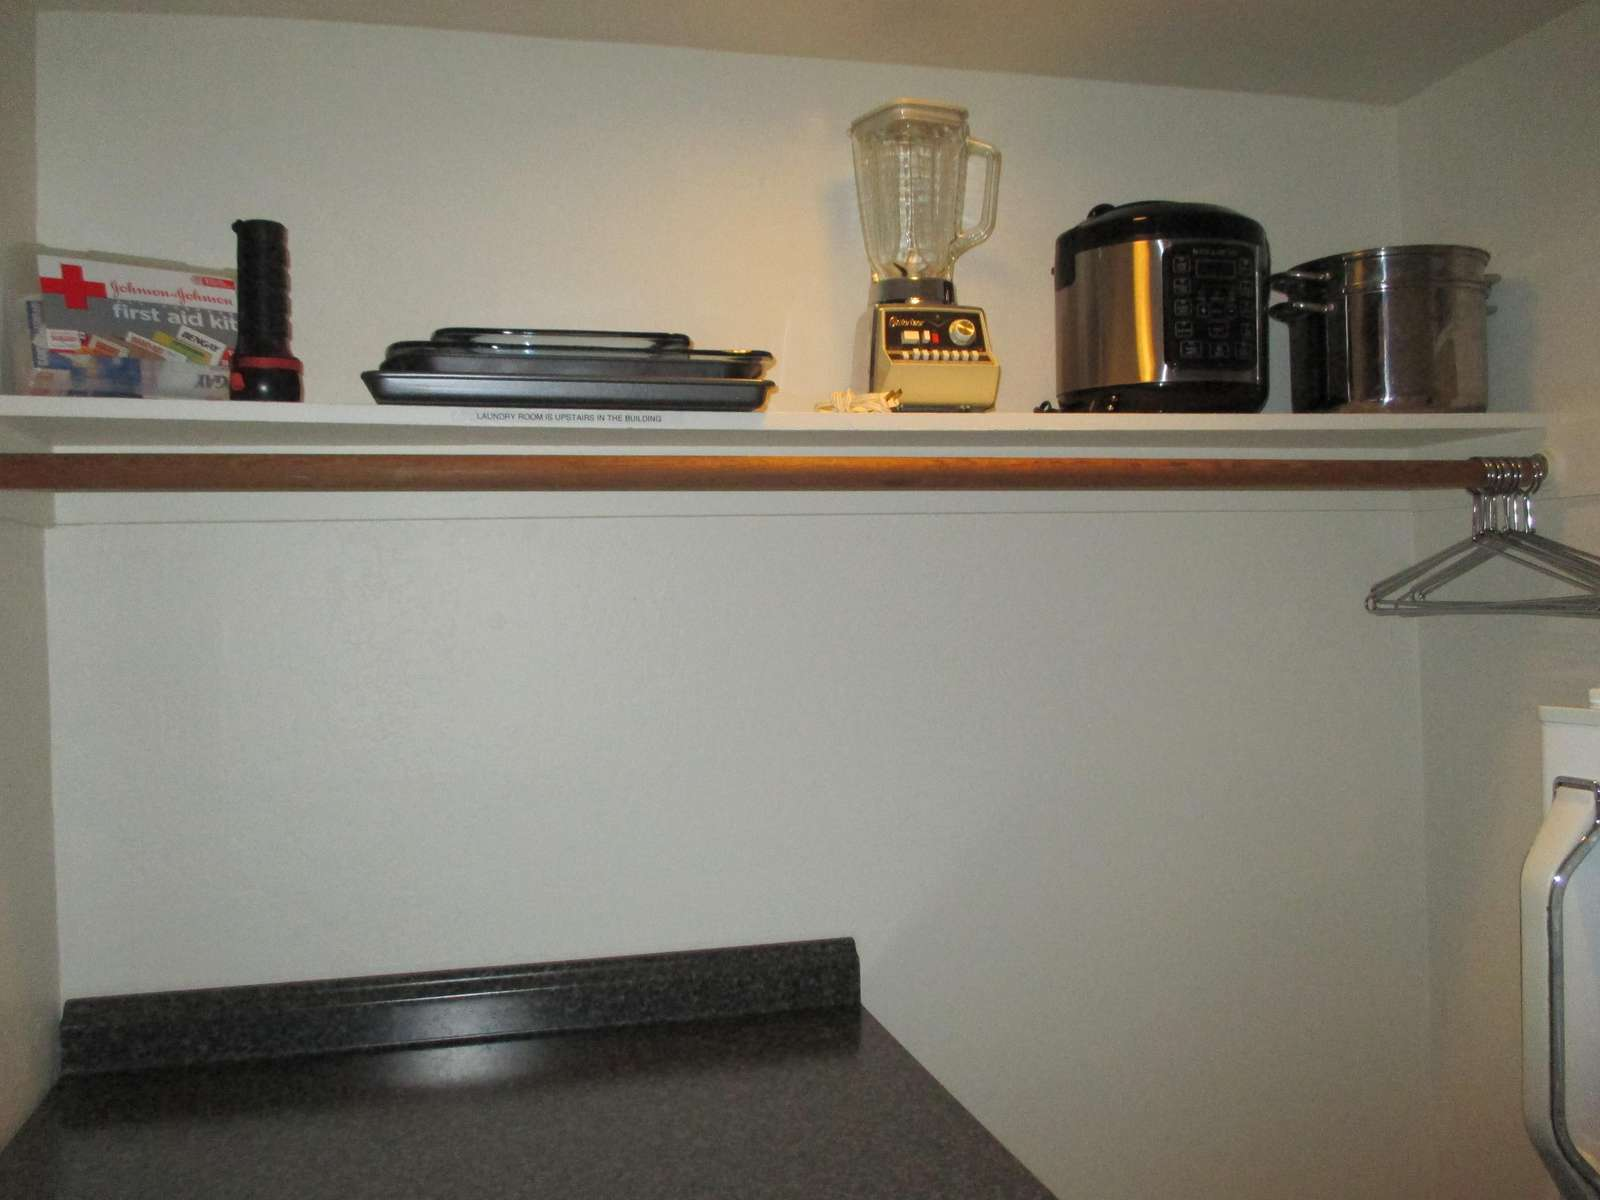 The walk in closet with additional kitchen amenities.